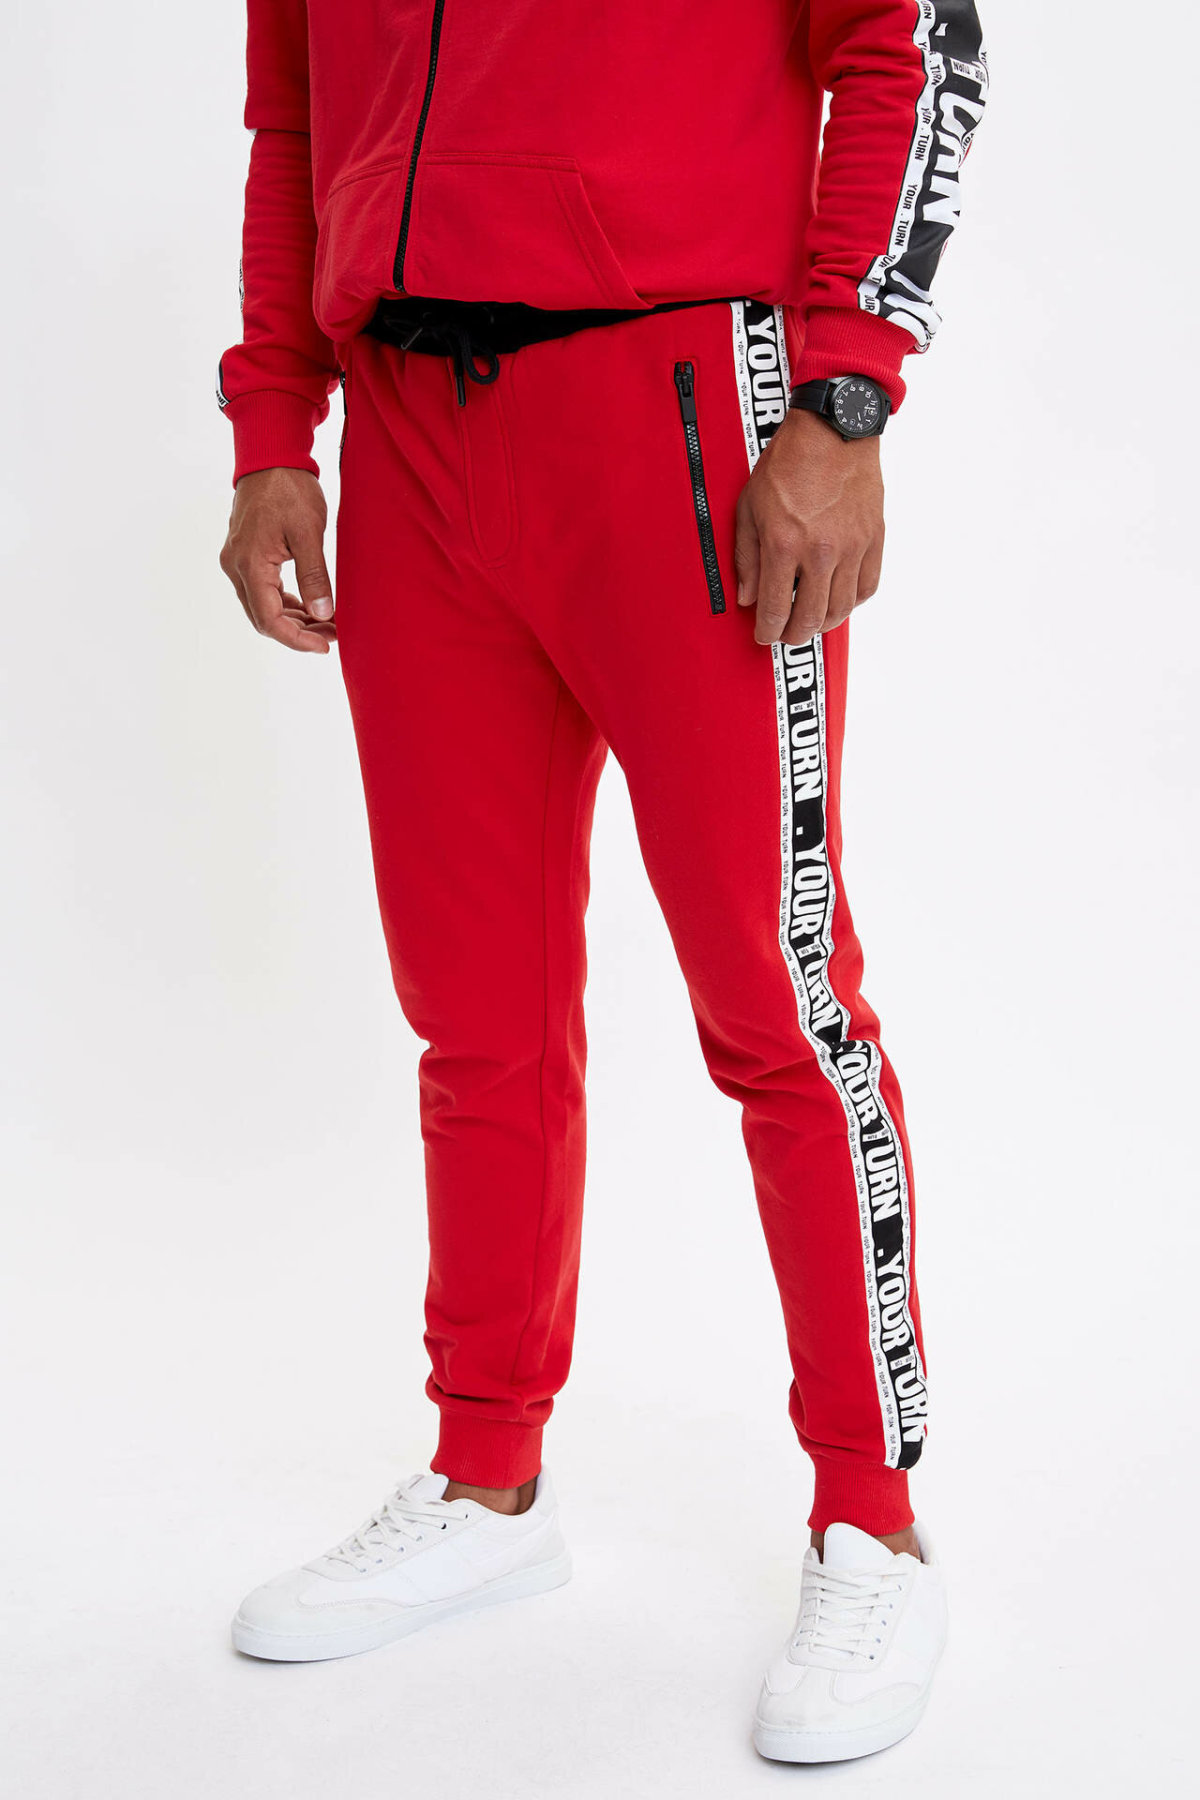 DeFacto Fashion Men's Sport Sweatpants Men's Red Casual Drawstring Long Pants Male Leisure Bottoms New- L1454AZ19AU